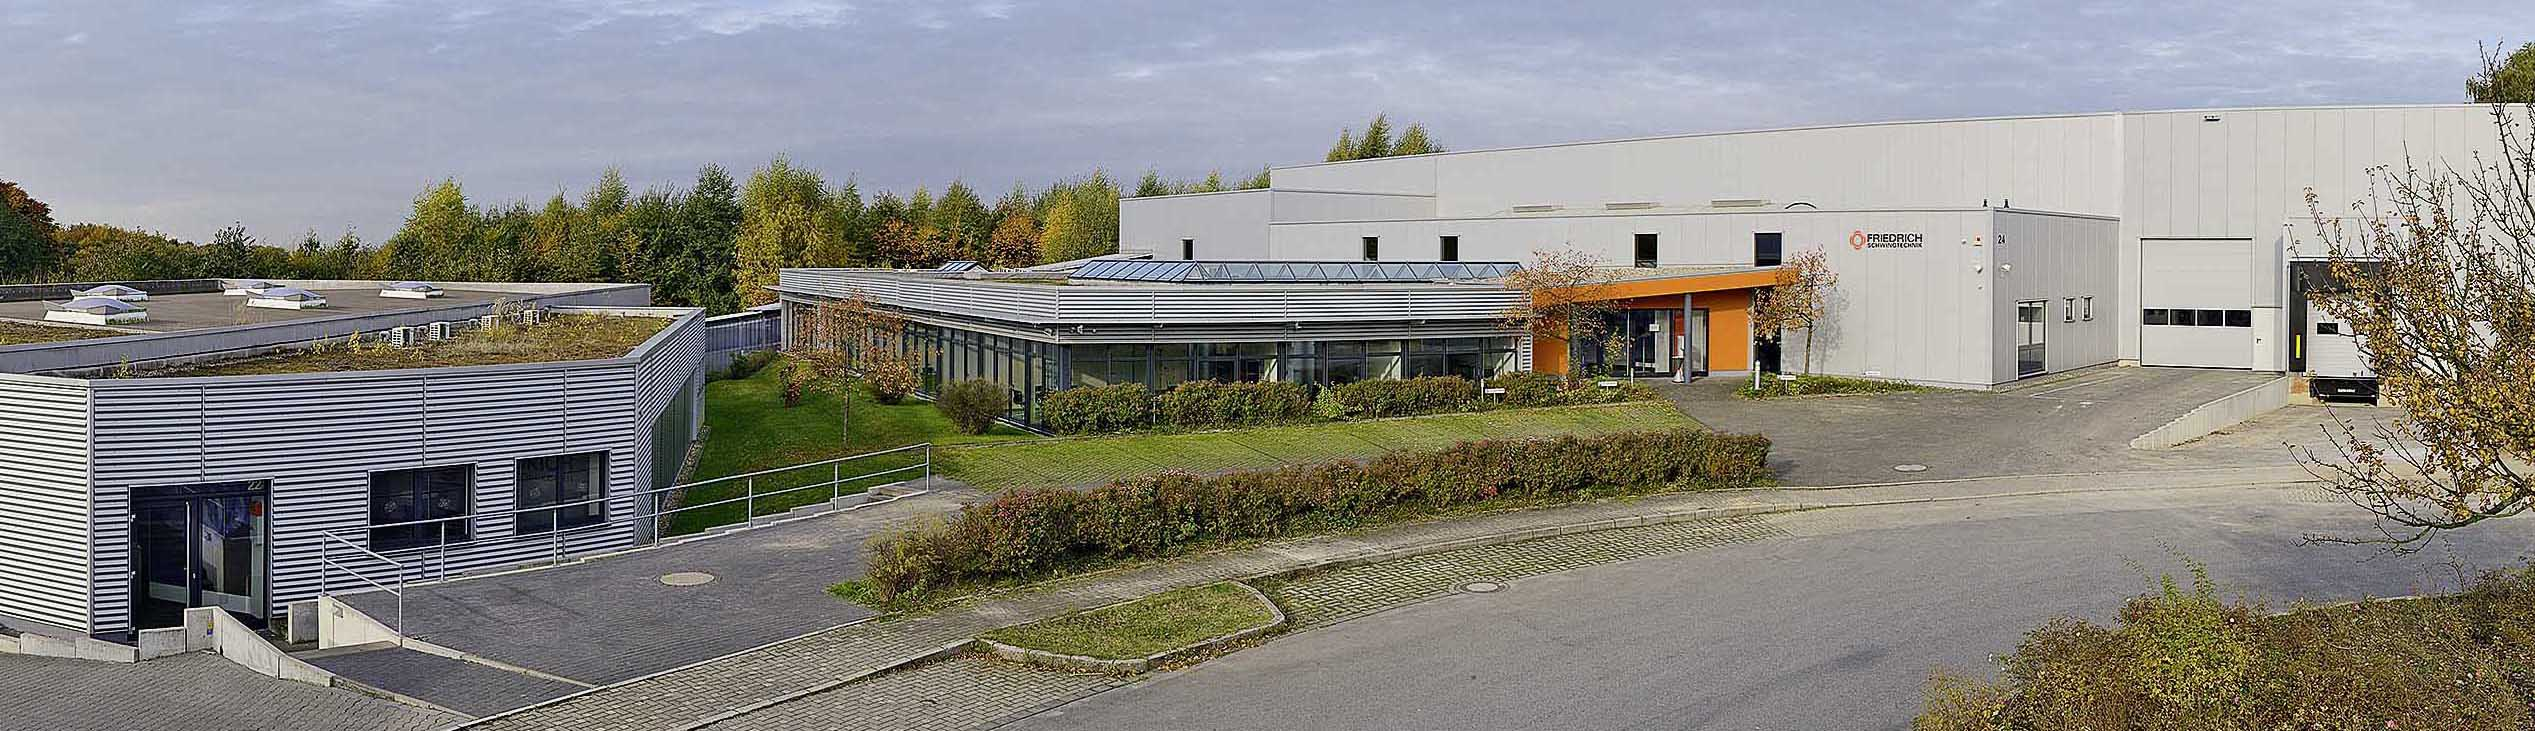 Friedrich Schwingtechnik GmbH, company buildings in Haan, Germany